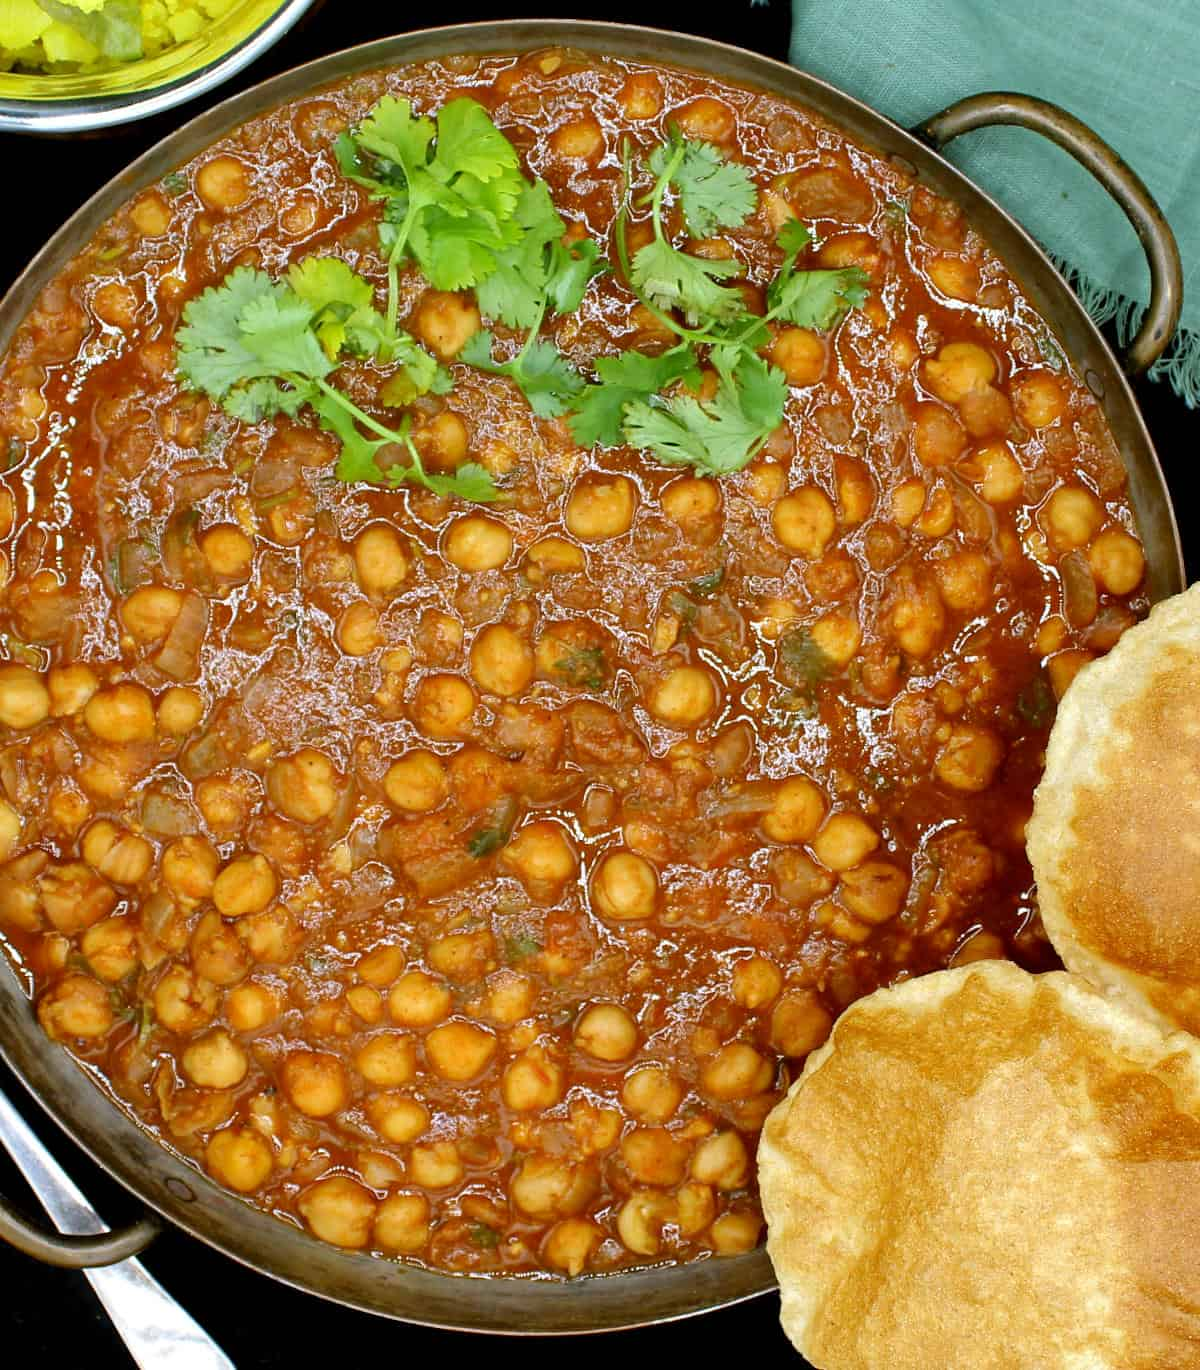 Closeup of chana masala in a copper pan garnished with cilantro and with pooris, an Indian fried bread and potato curry.